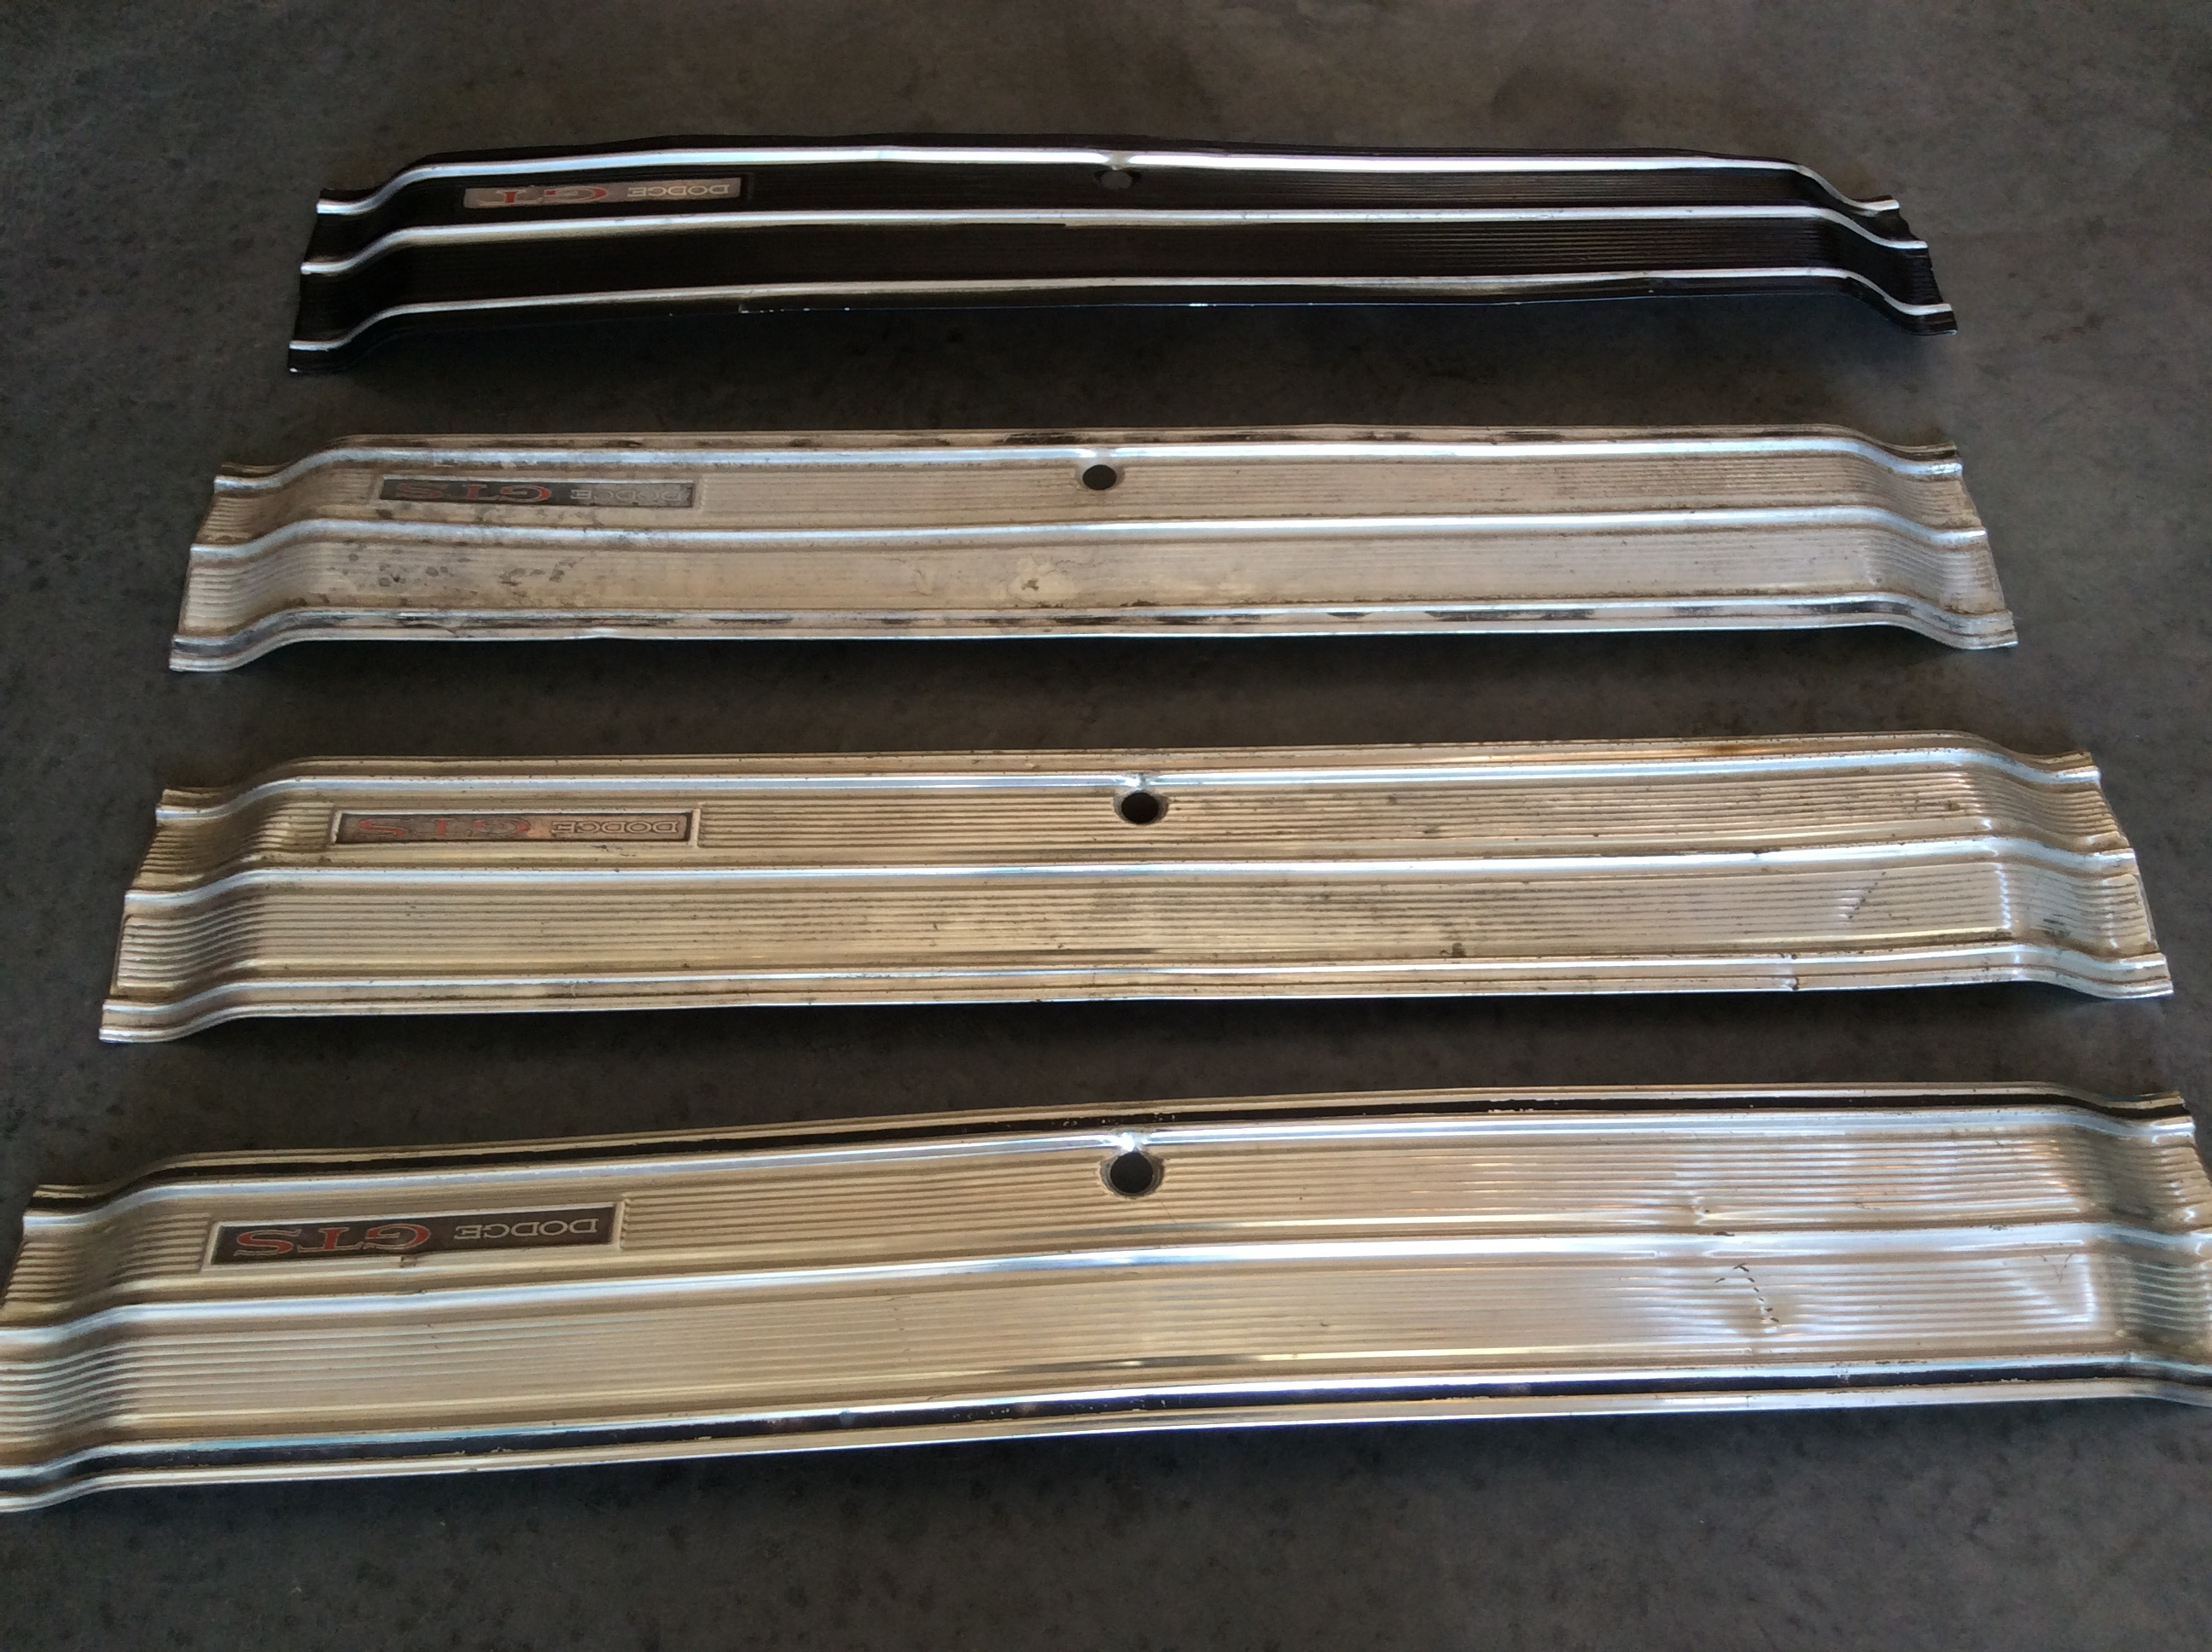 Wanted 1969 Dodge Dart Gt Gts Trunk Finish Tail Panel